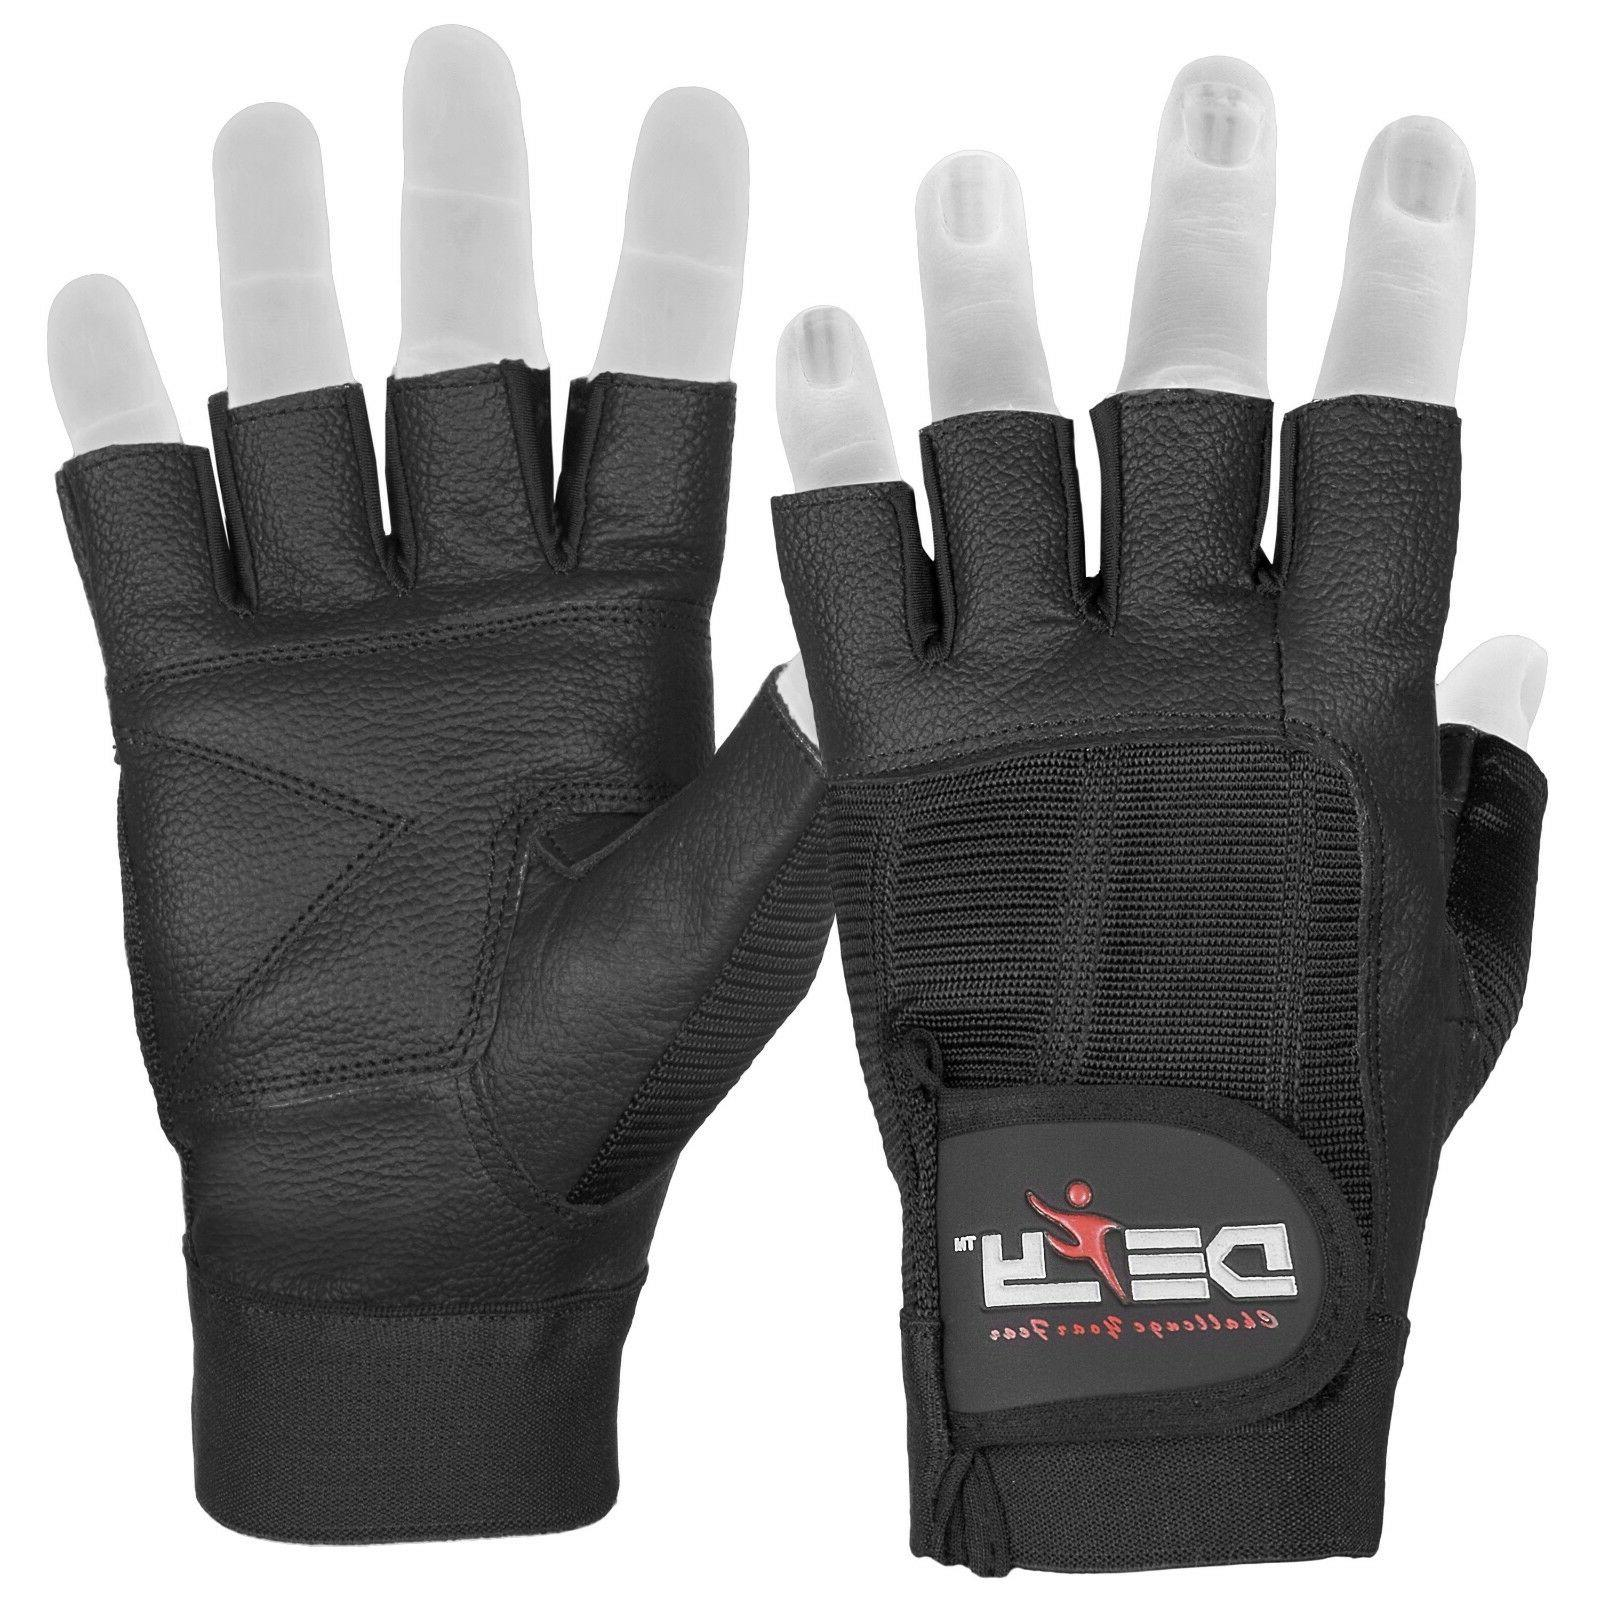 defy real leather spandex padded gym gloves